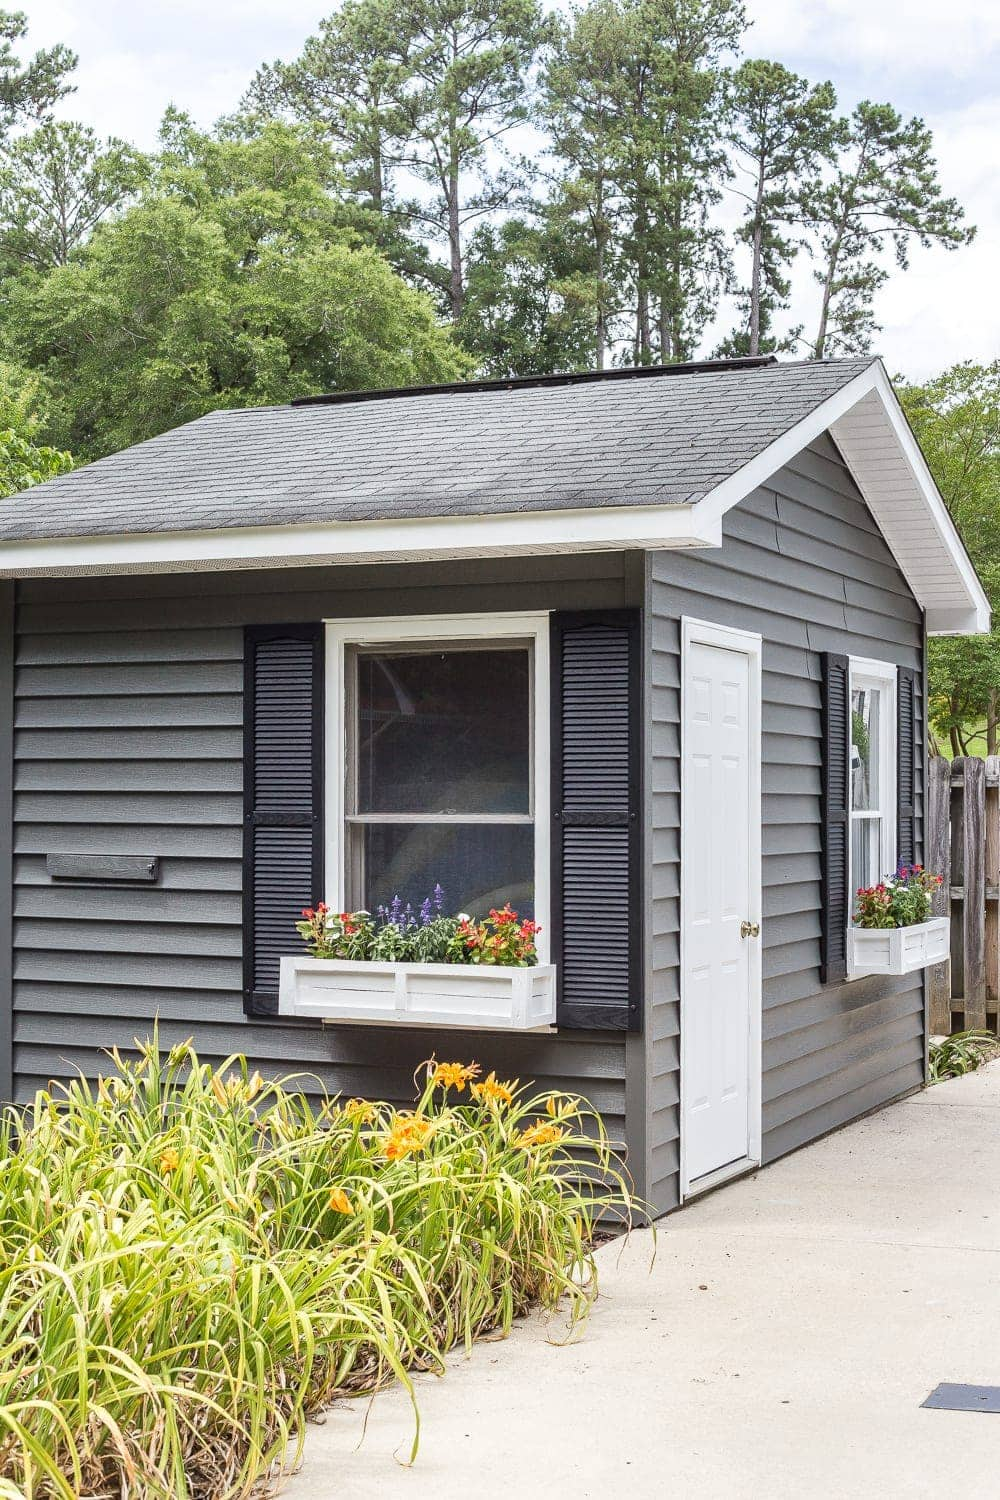 Inexpensive pool shed makeover using vinyl siding paint in Sherwin Williams Pepper Shake + DIY window boxes made from repurposed scrap wood